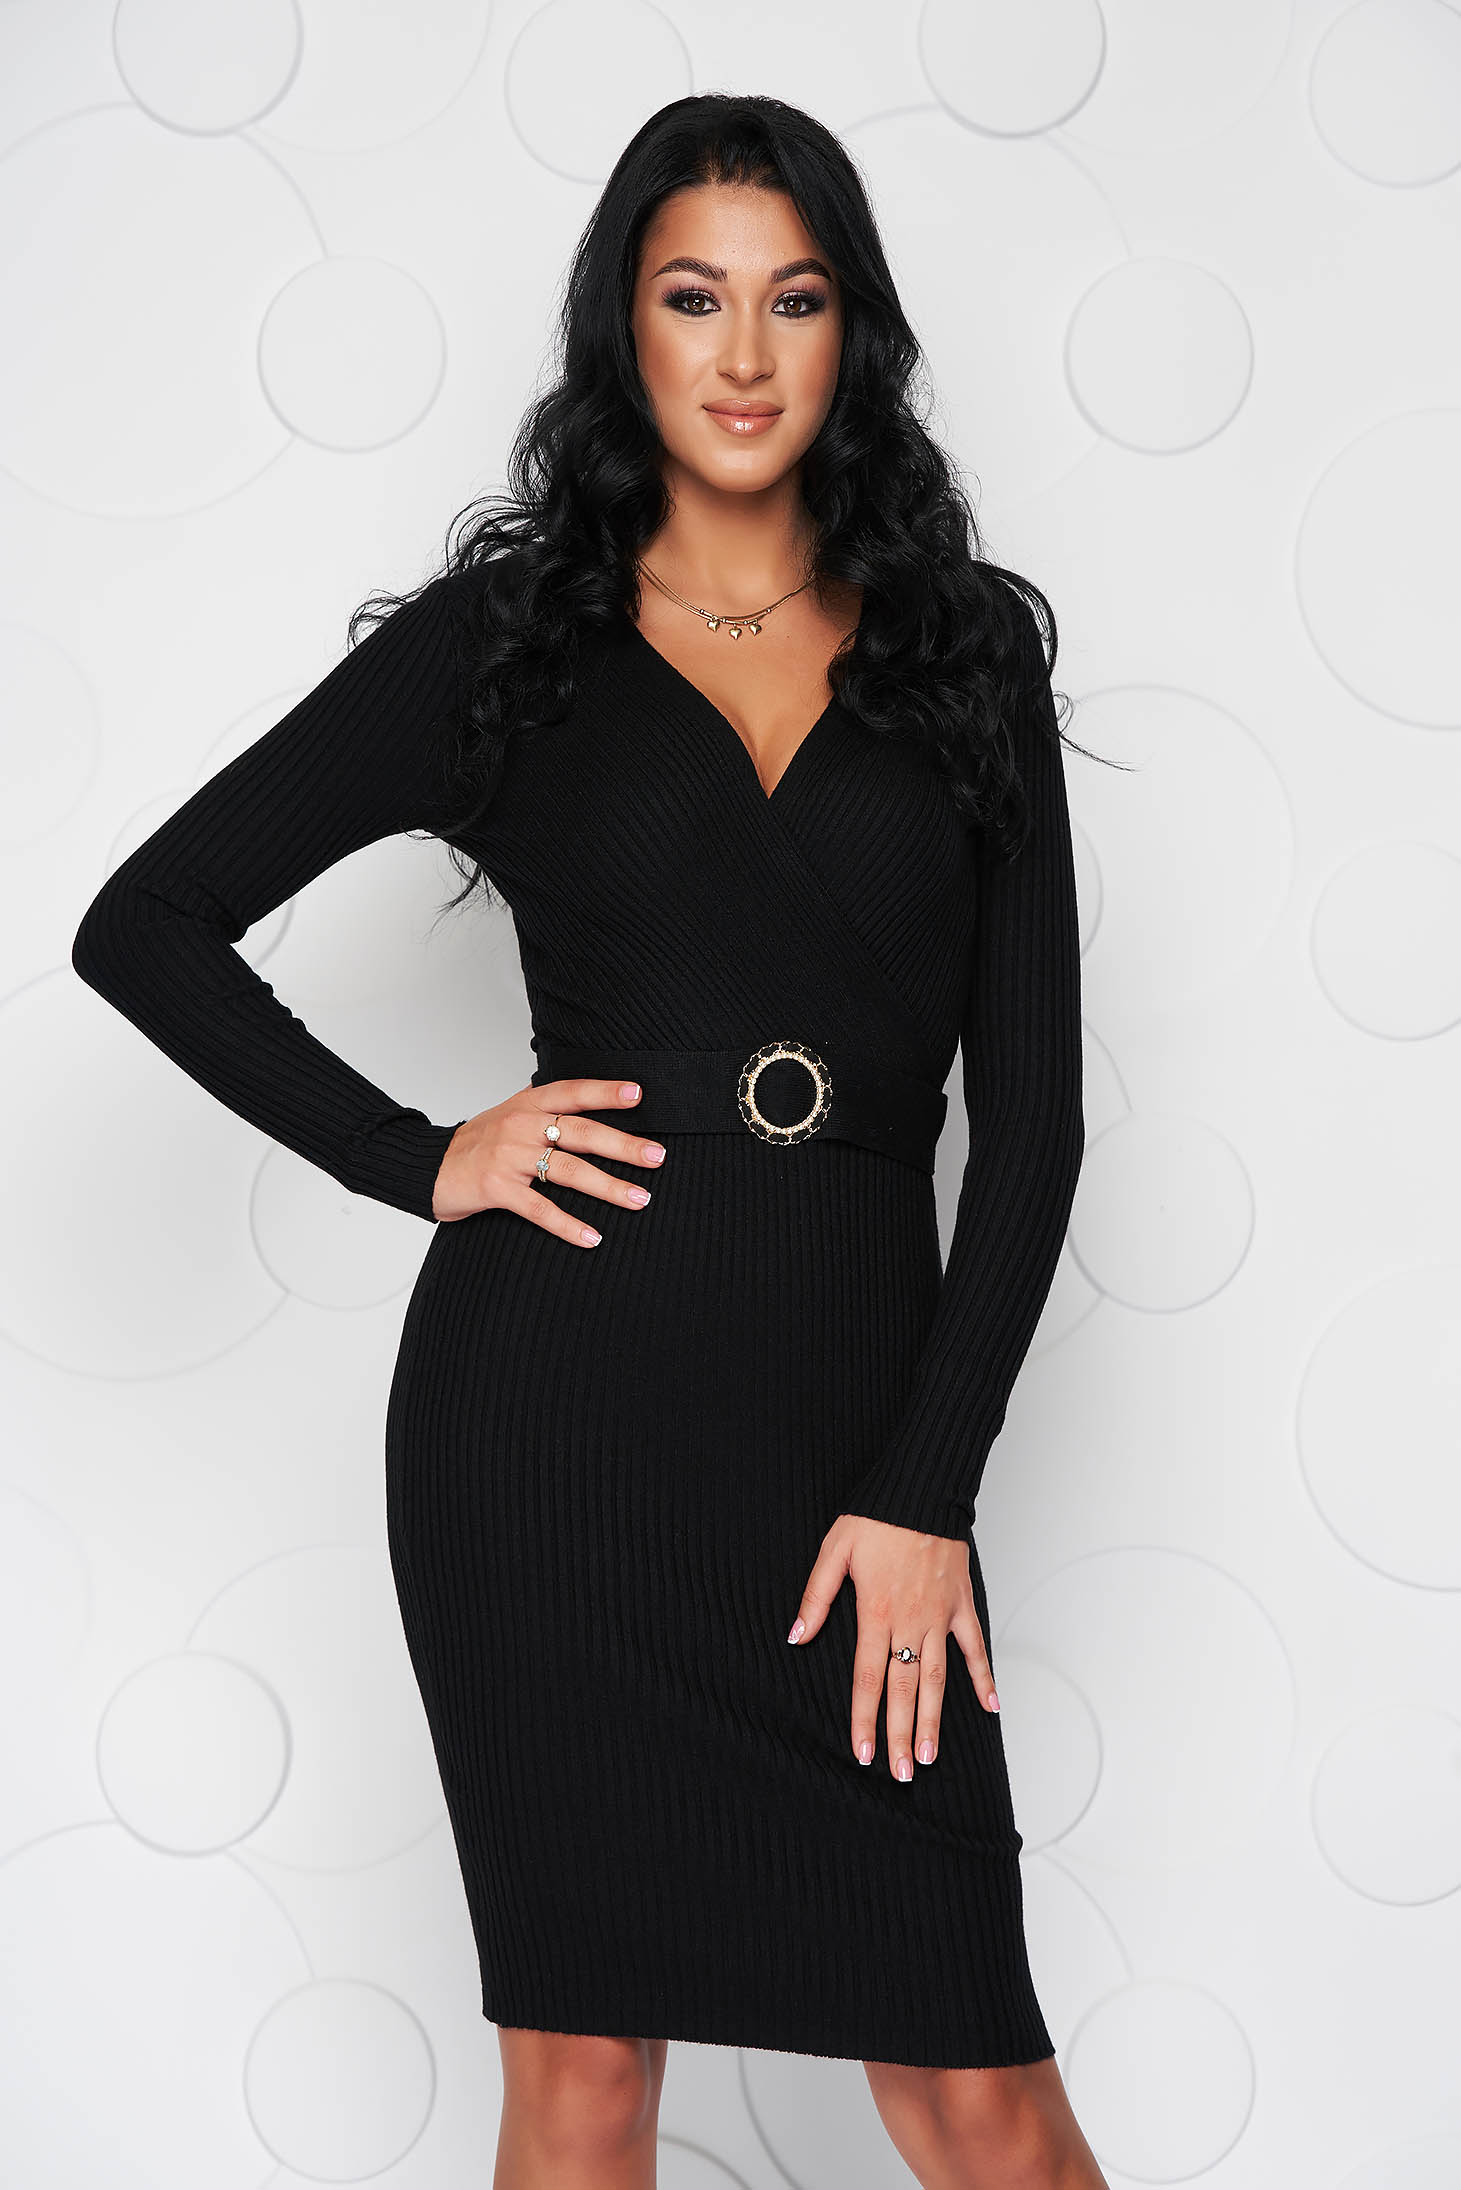 Black dress midi from elastic fabric knitted fabric buckle accessory from striped fabric